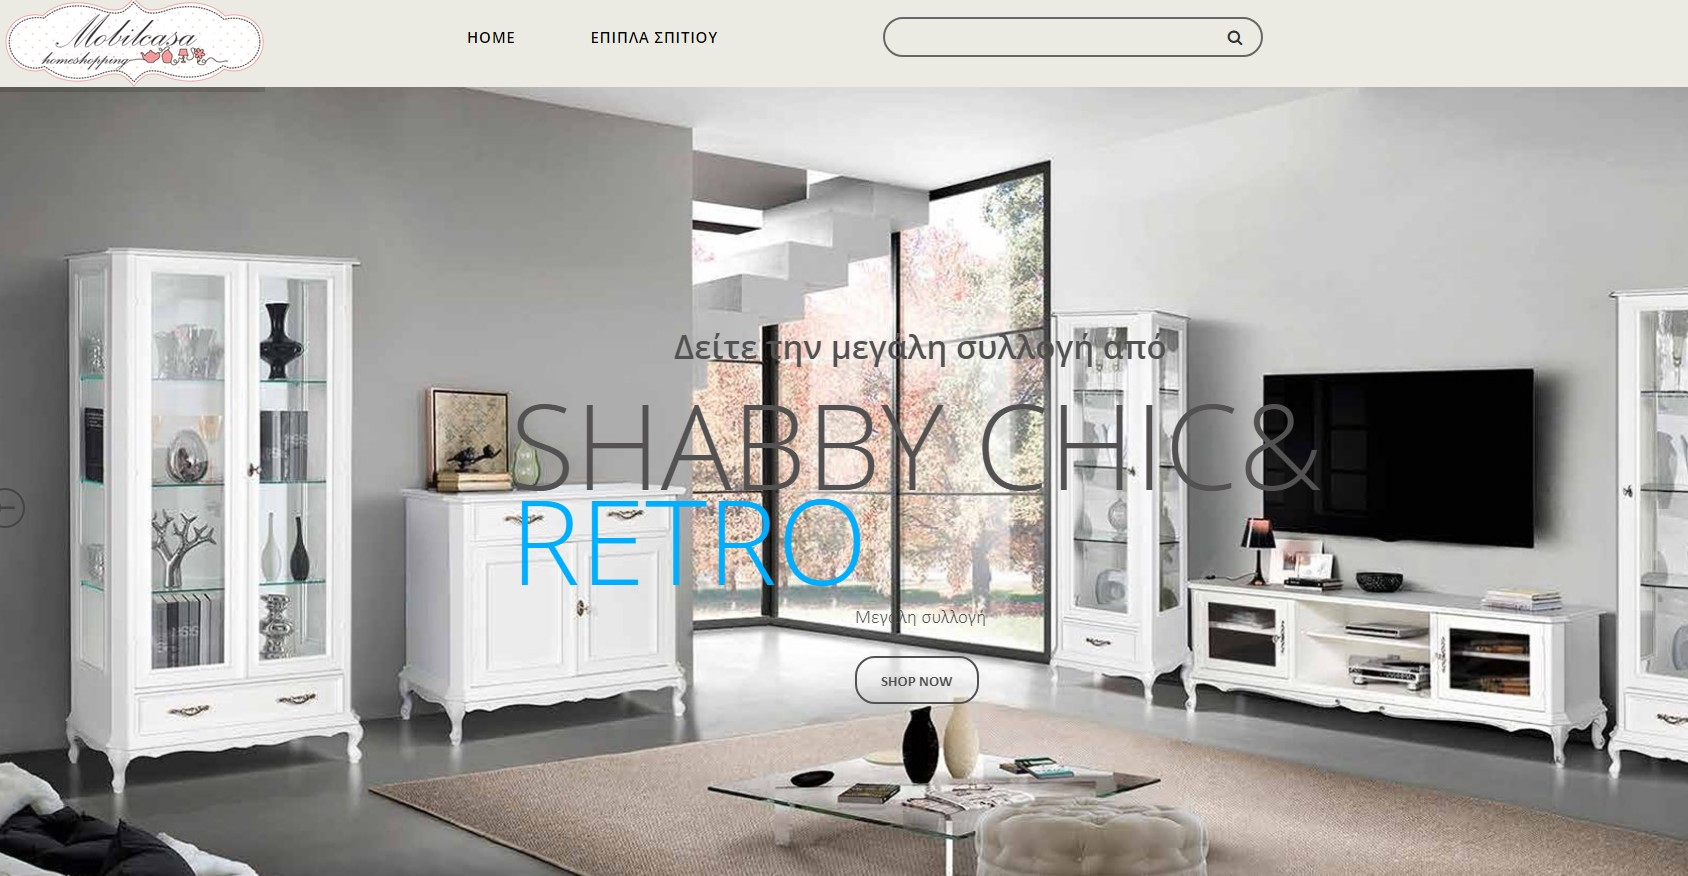 homeshopping.gr - magento eshop